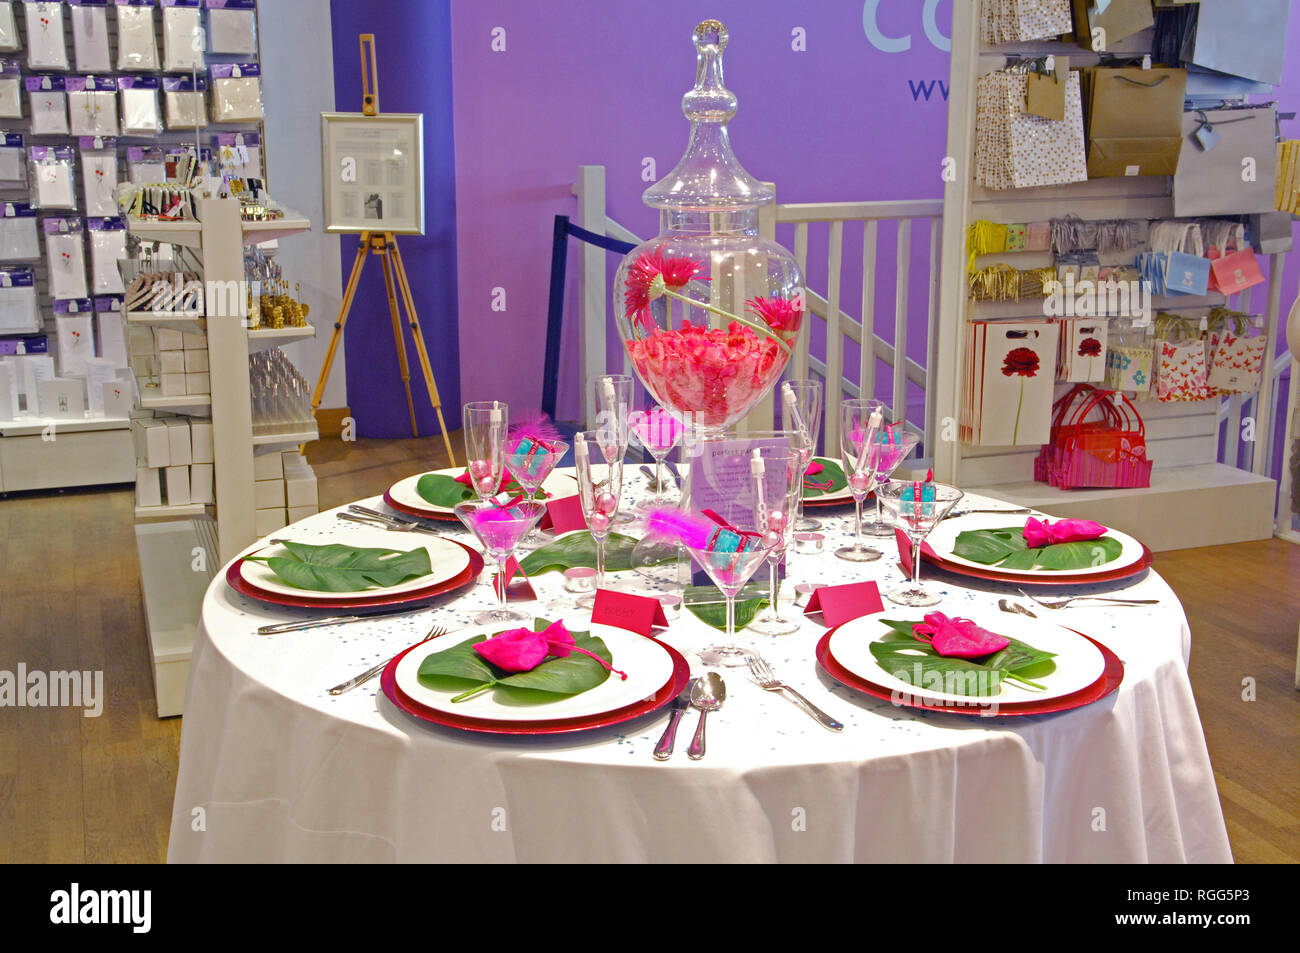 A laid table in a wedding shop - Stock Image